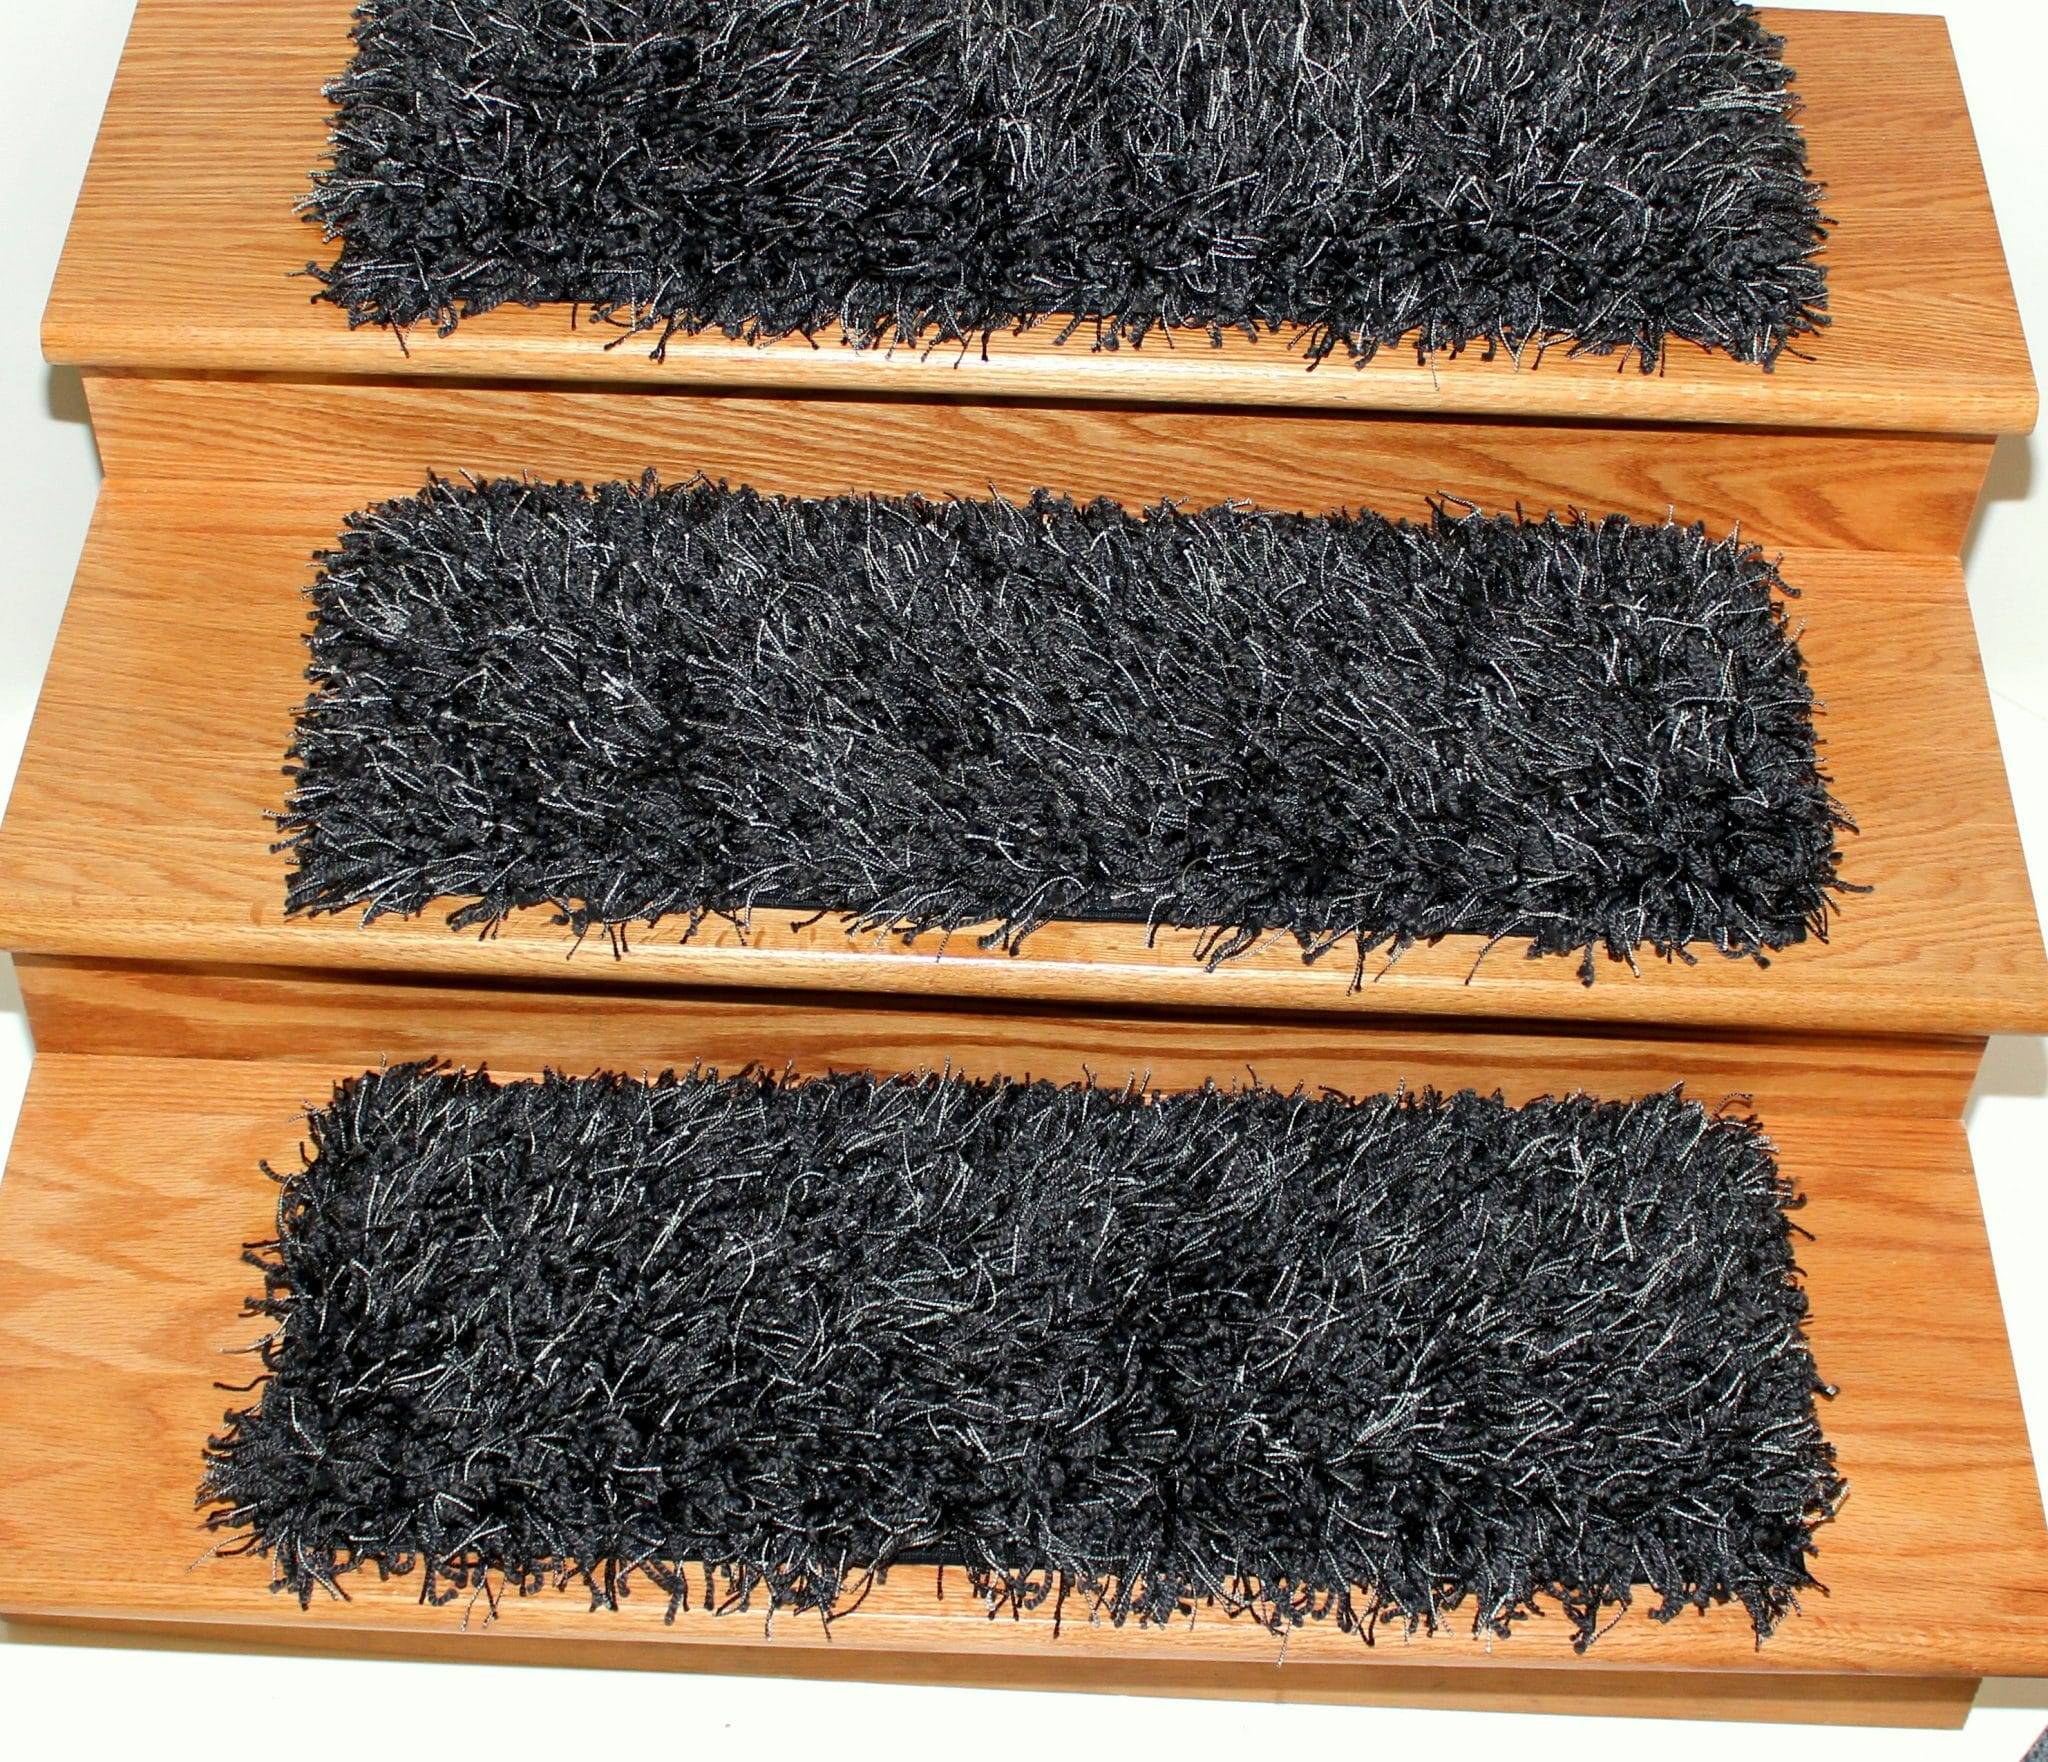 Bling Black Marble Shaggy Stair Treads | 9u2033 X 27u2033 (Set Of 13) 1.5u2033 Thick  Super Shaggy Bling Black Marble Stair Treads And Tape